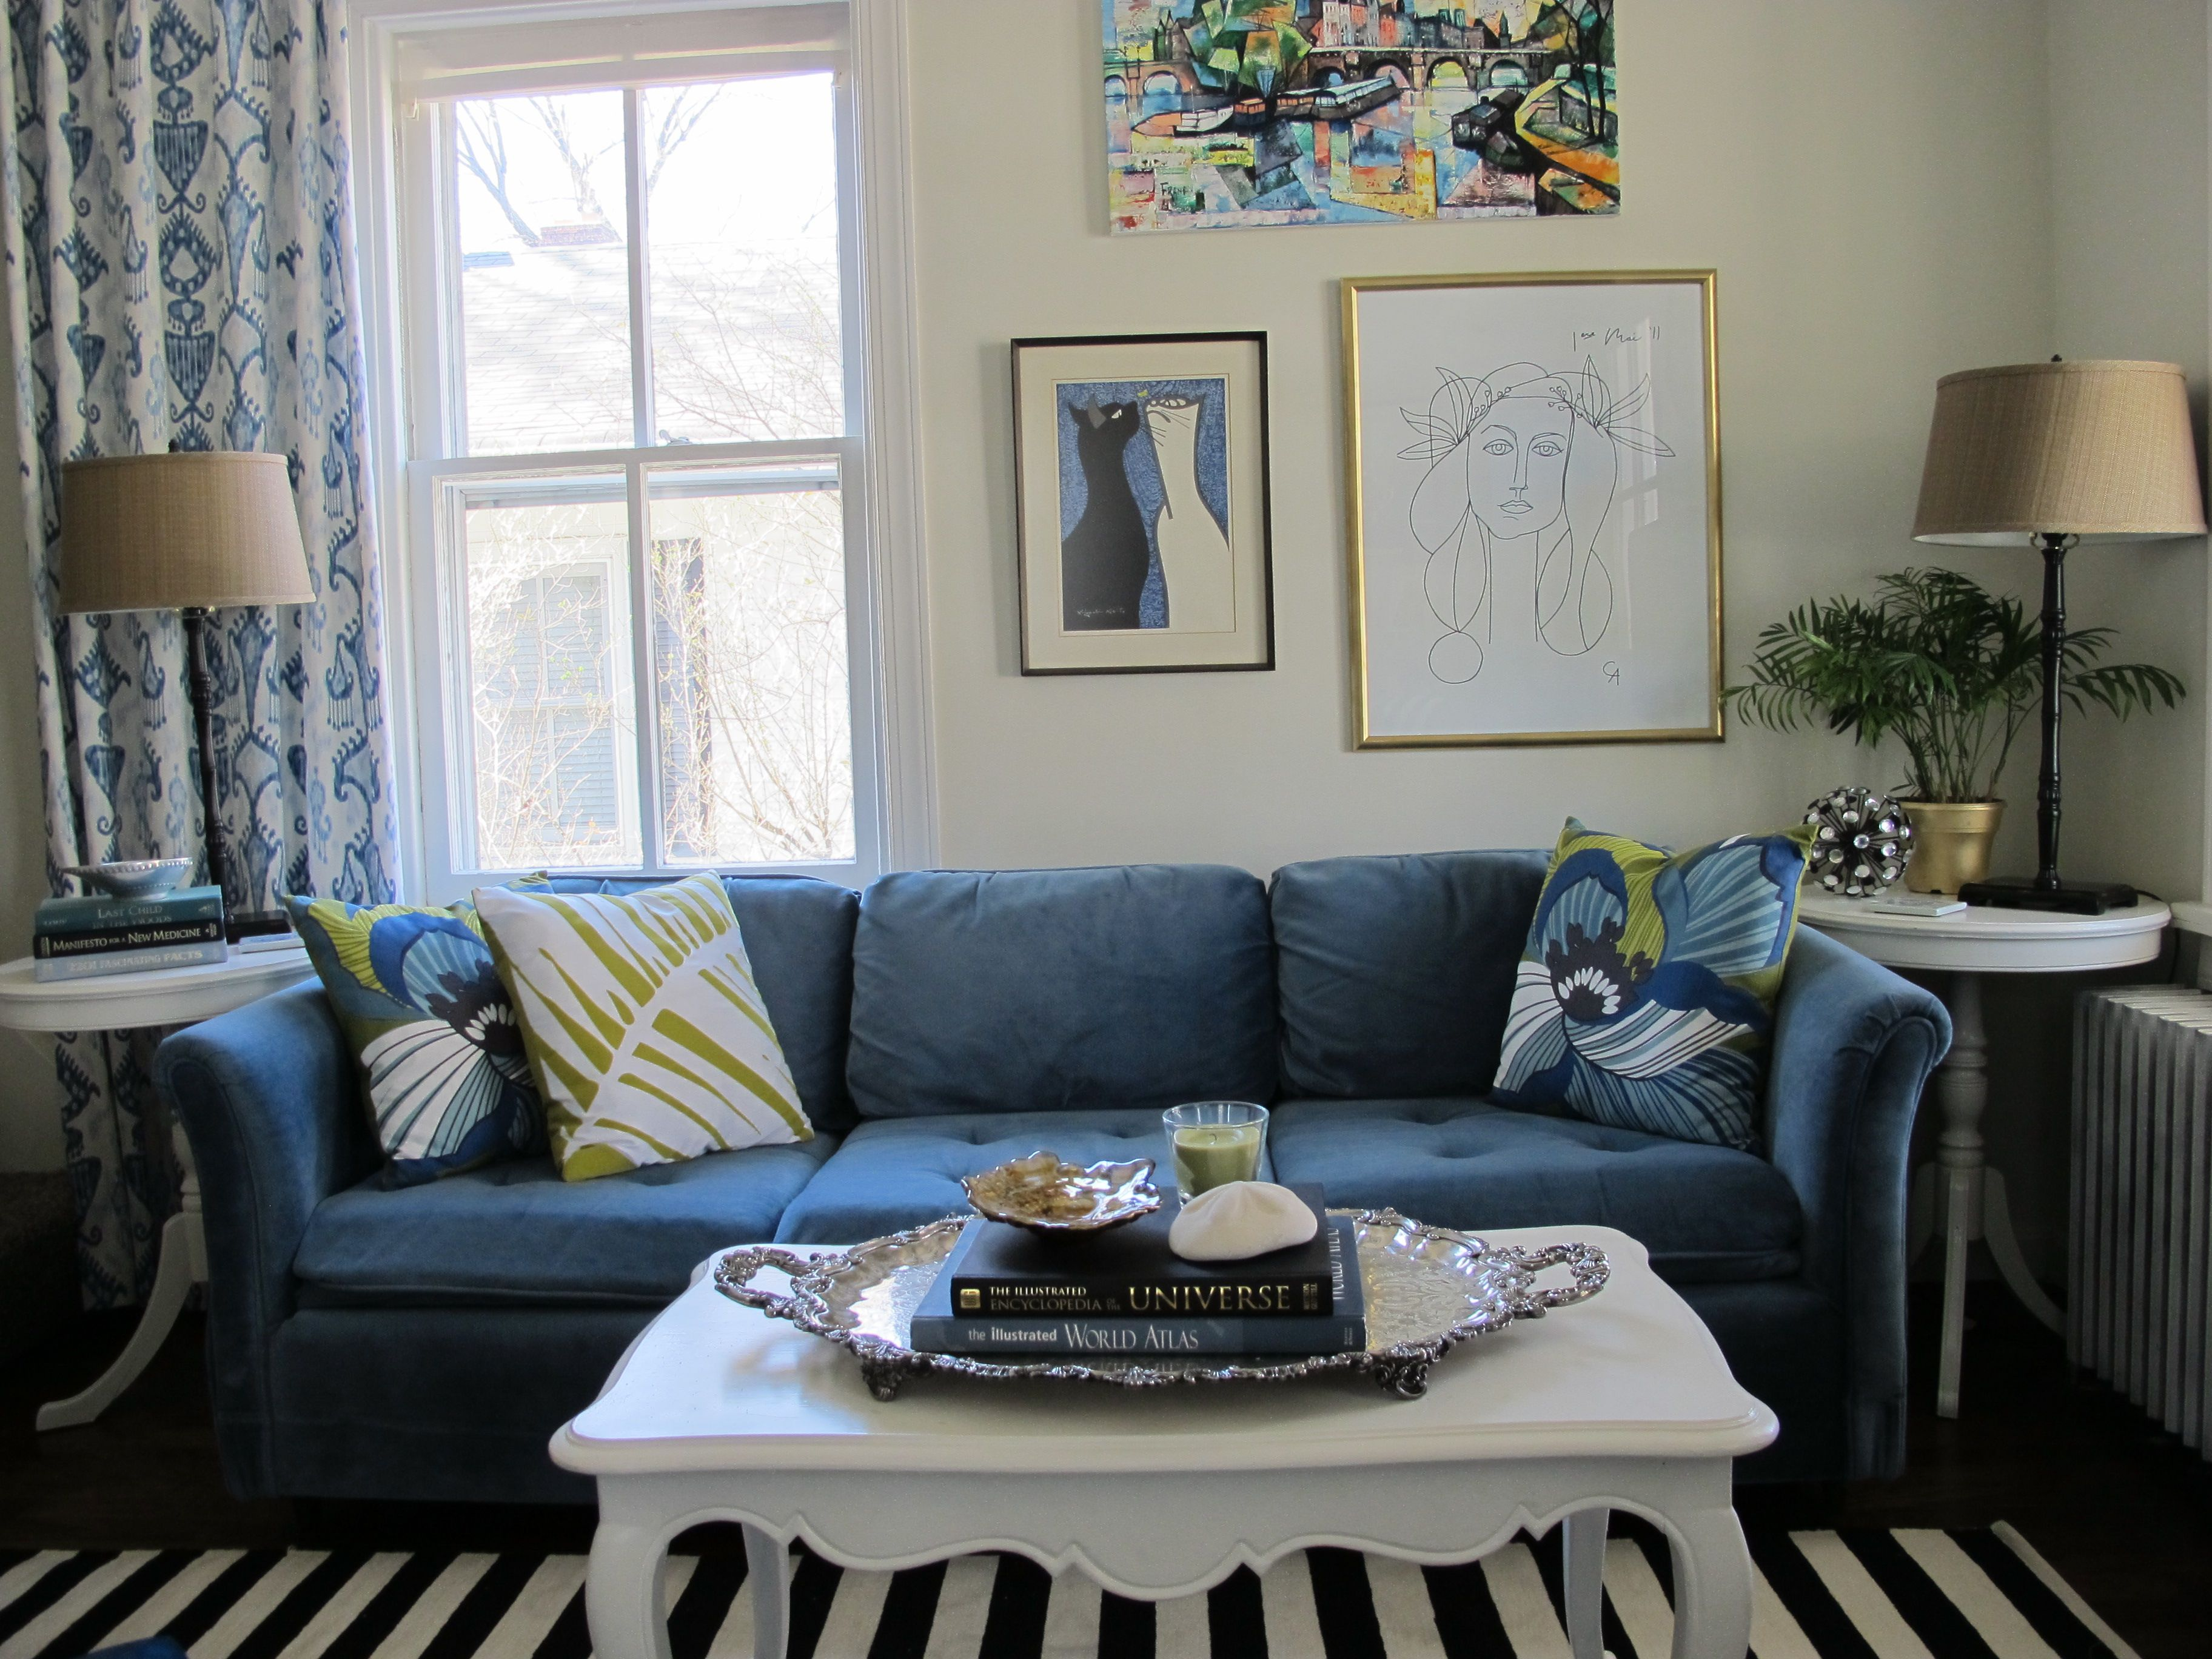 Living Room With Navy Blue Couch And Strip Rug Decor Ideas, 38 Interior U0026 Living  Room Designs In Modern Blue Living Room Design Inspirations Gallery